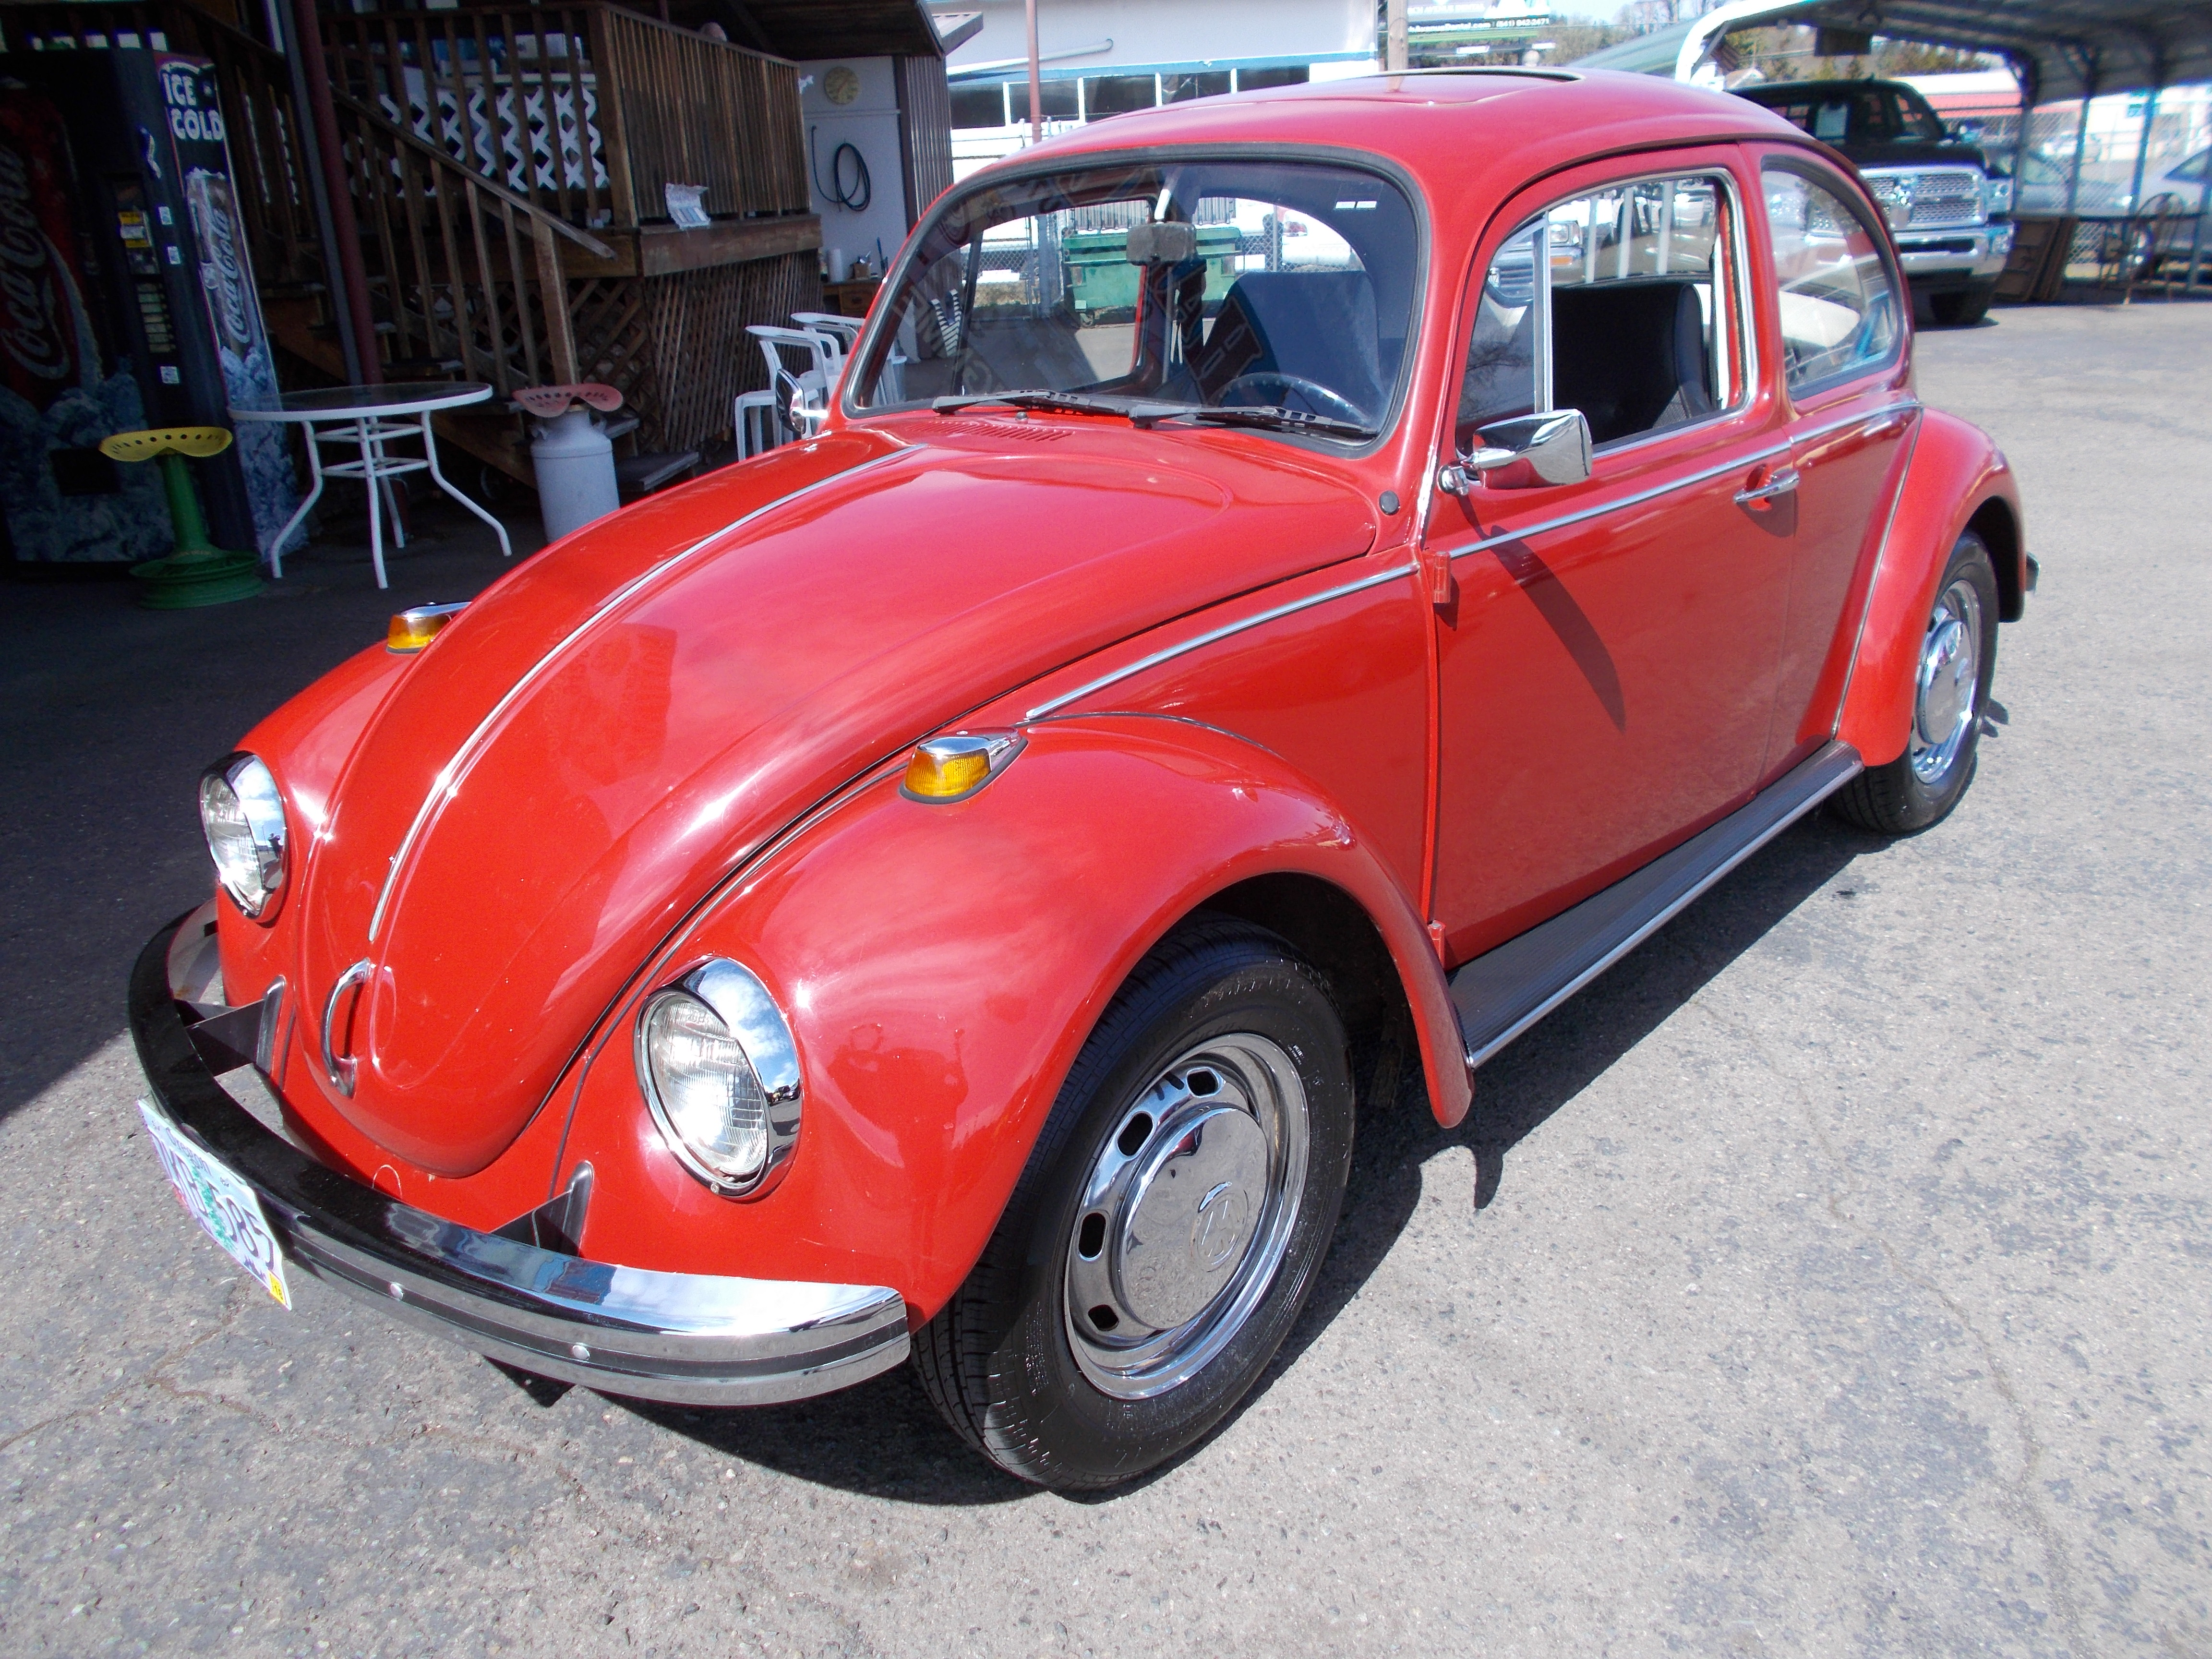 Hamilton Auto Sales 1972 Vw Bug Turn Signal Wiring 1968 1600cc 4cyl 4spd Nice Restoration Very Straight And Solid Body W Newer Paint Interior Is Pretty Much Excellent Condition